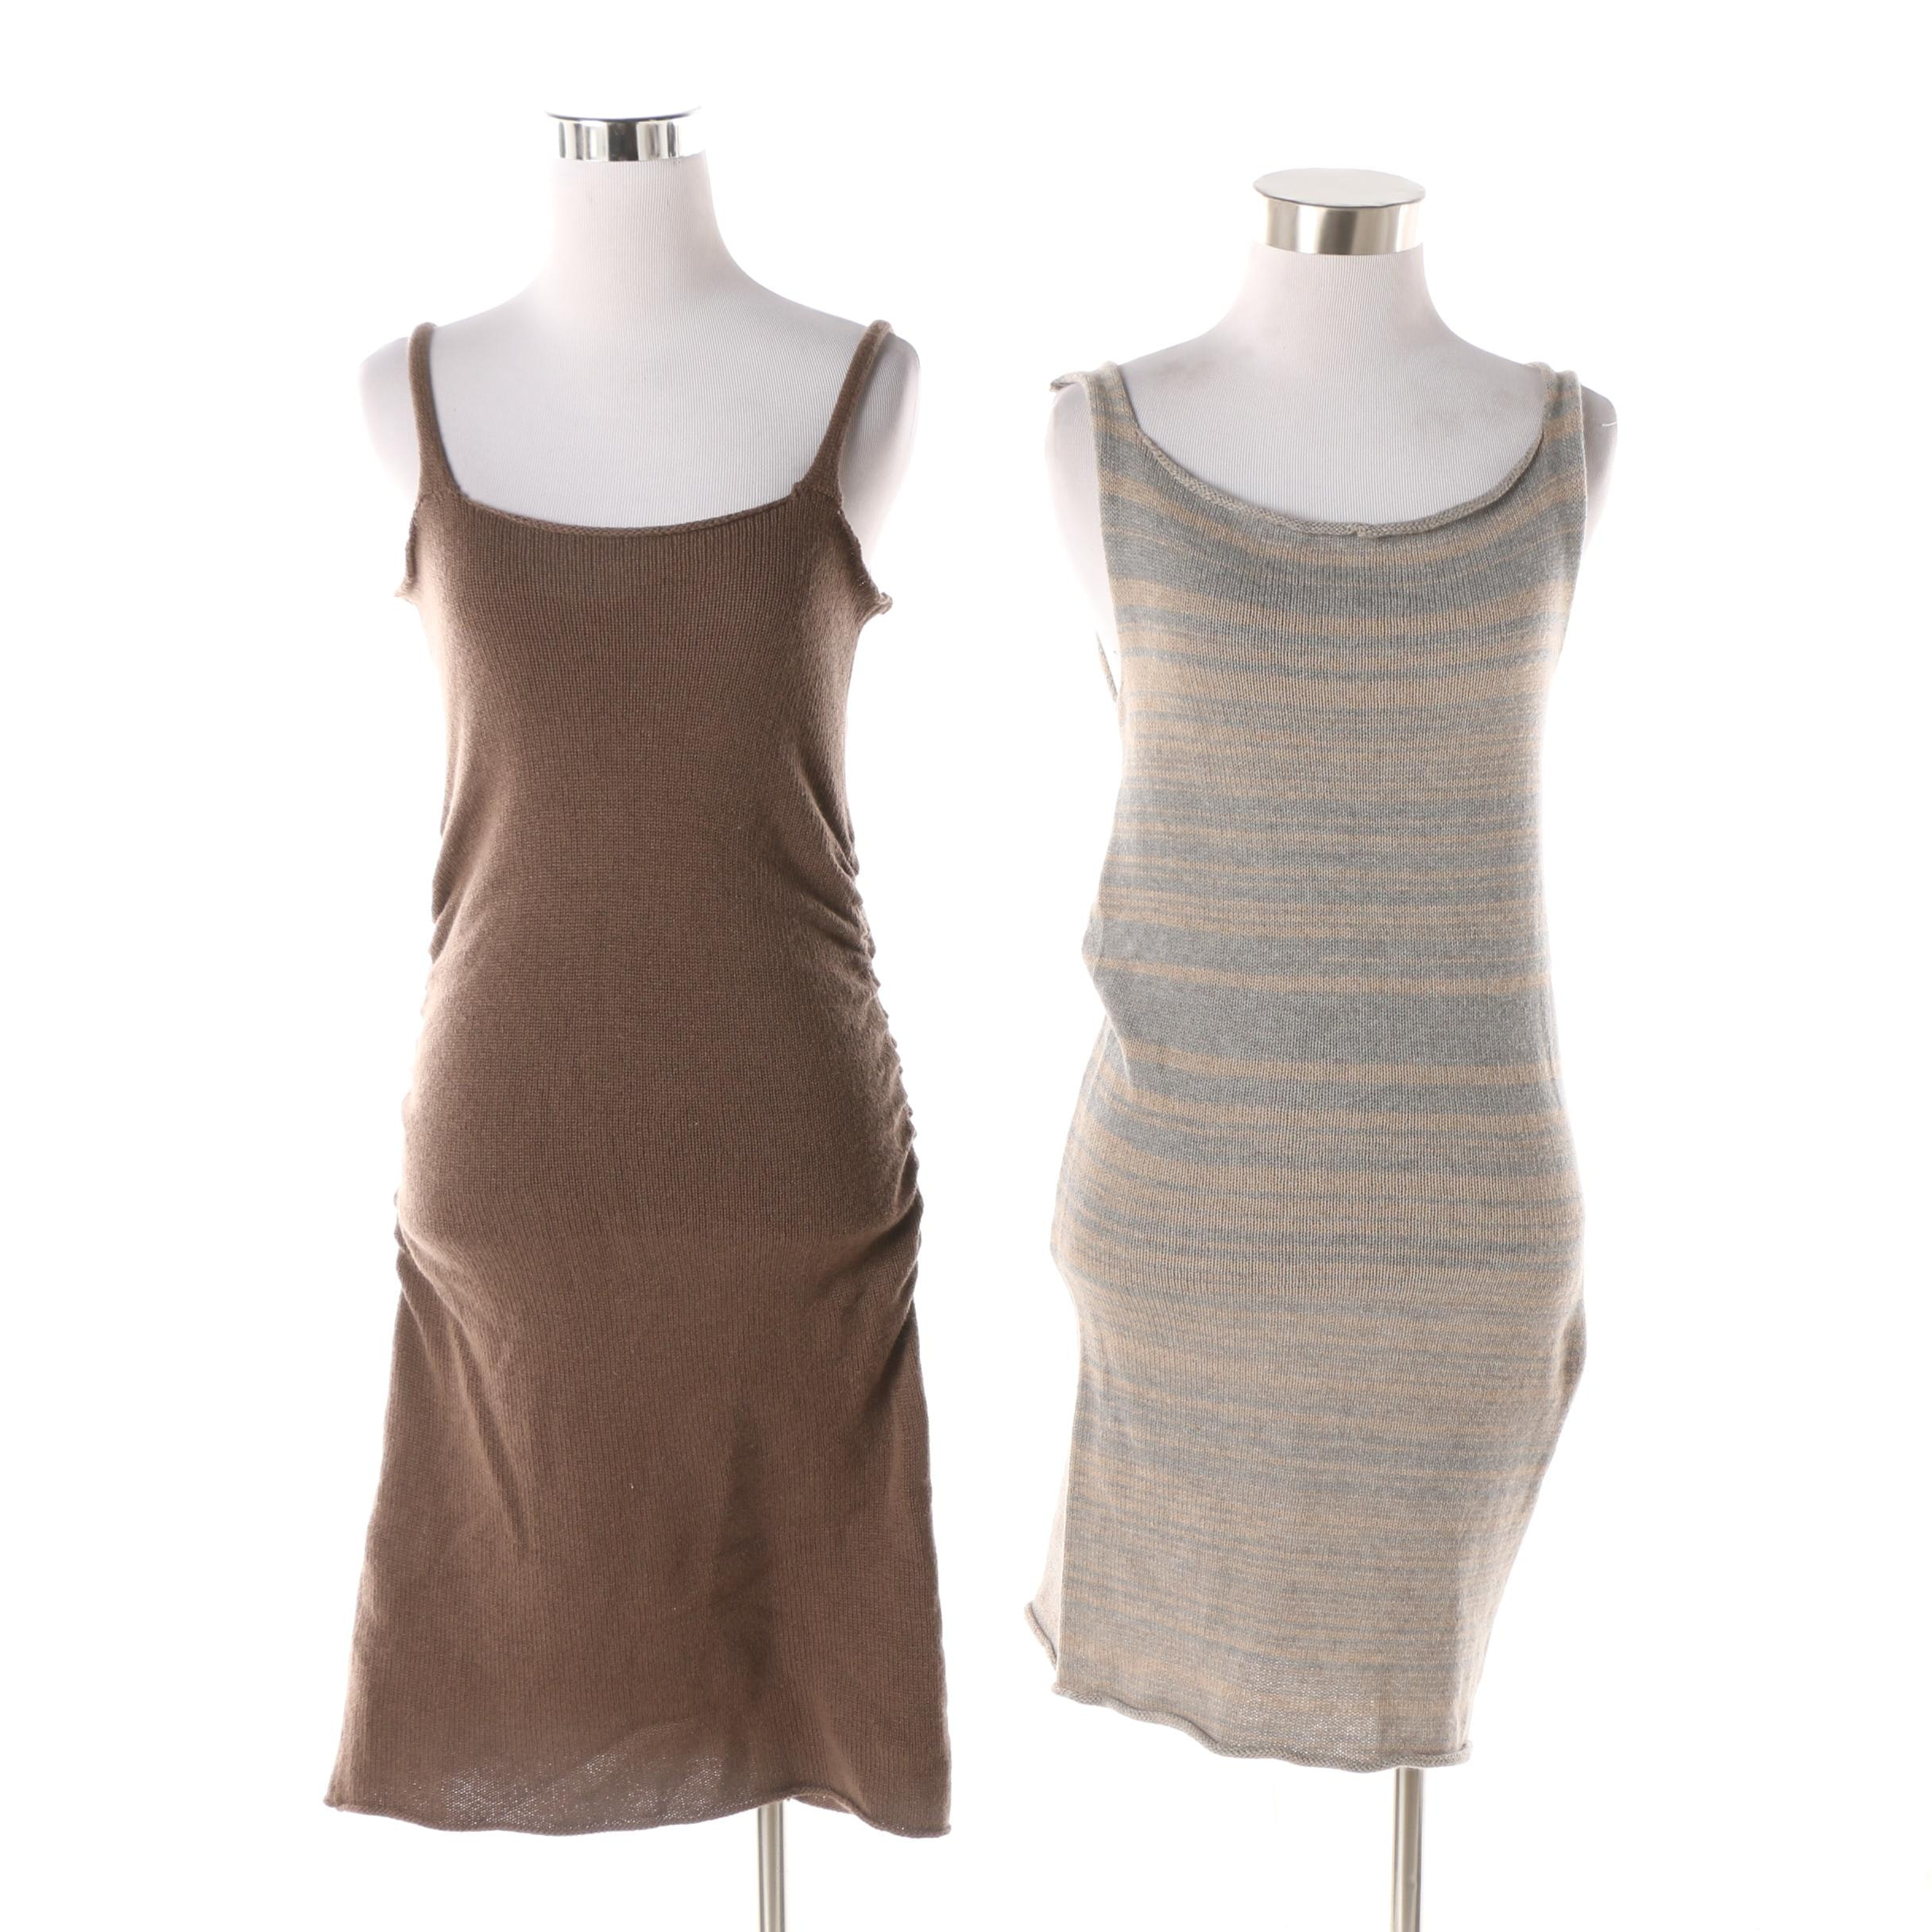 Women's Souchi Merino Wool Blend and Cashmere Knit Sleeveless Mini Dresses